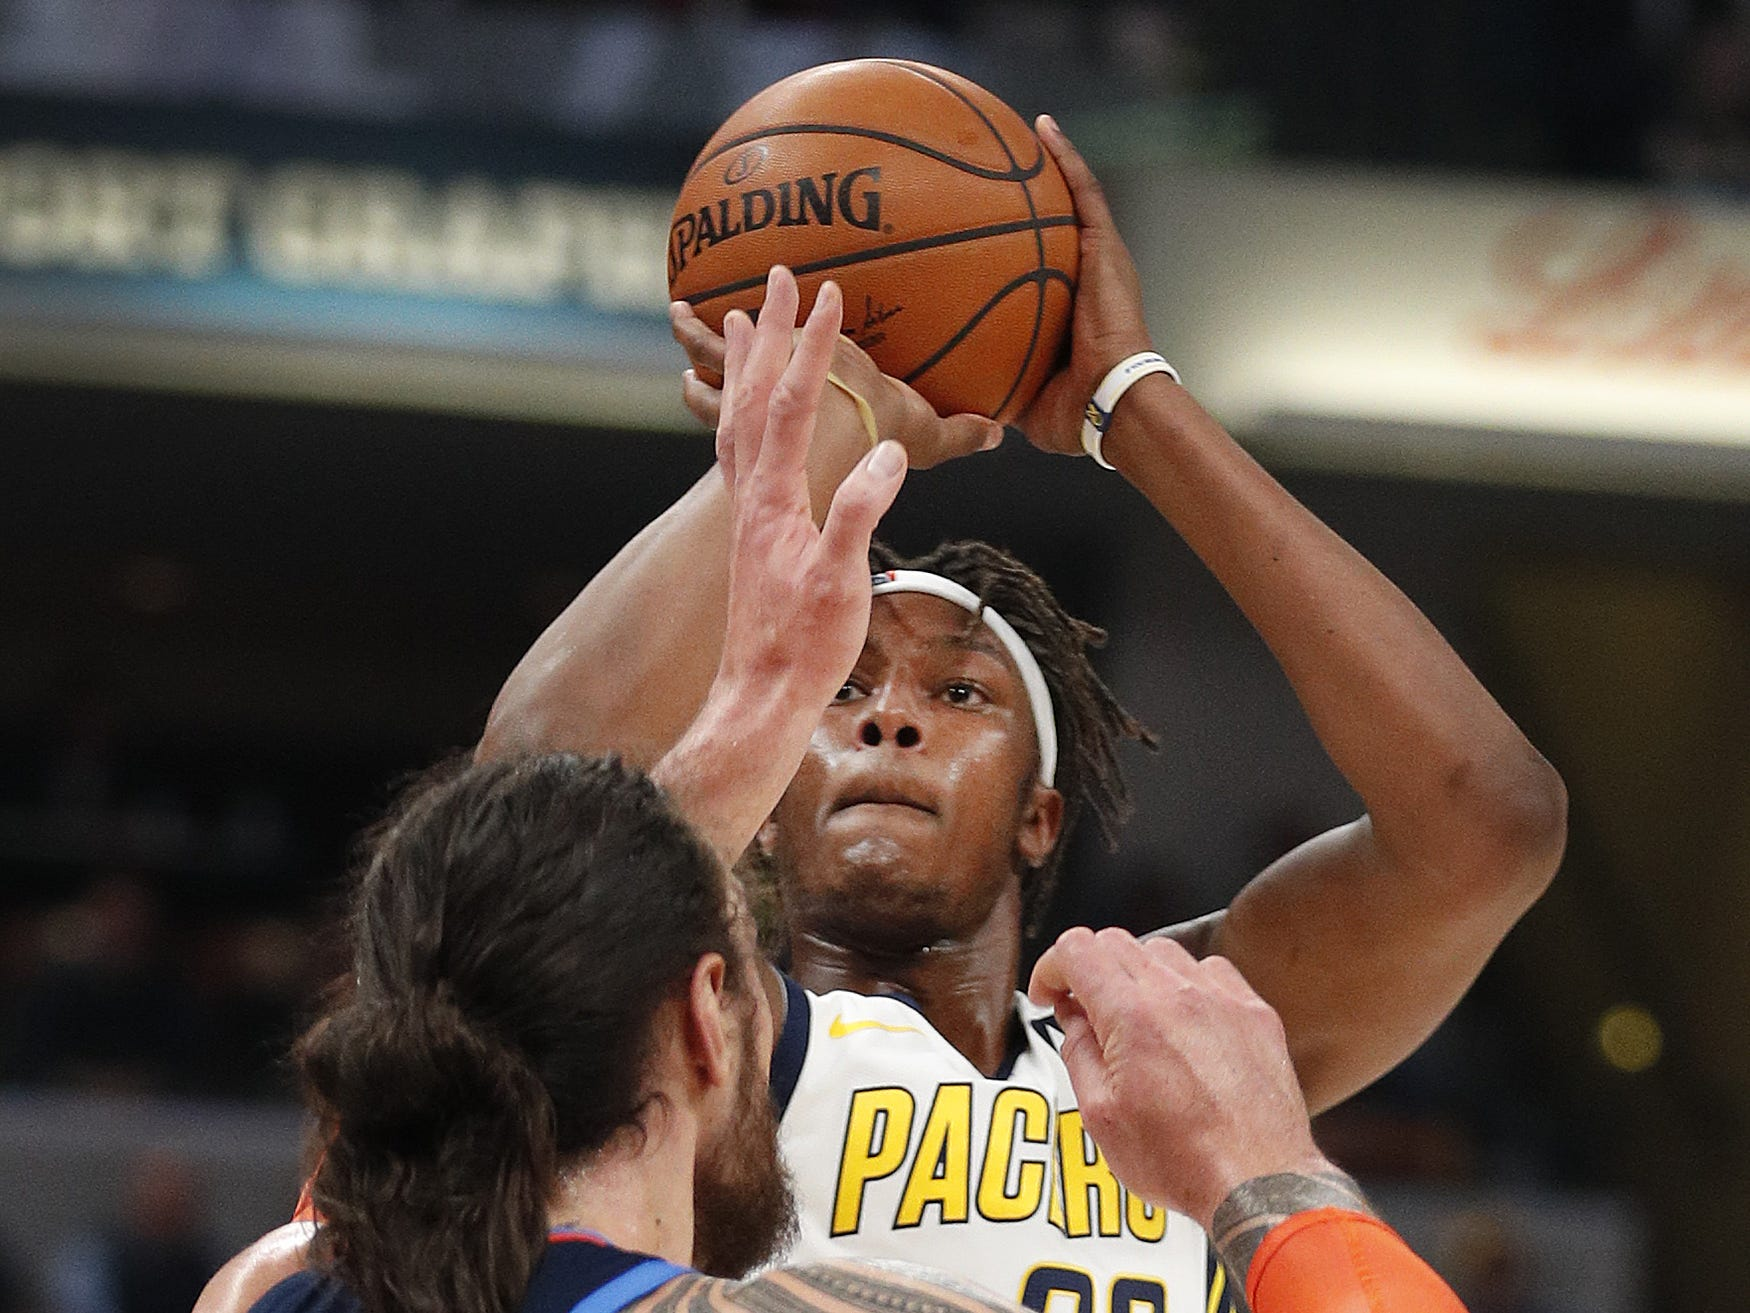 Indiana Pacers center Myles Turner (33) shoots over Oklahoma City Thunder center Steven Adams (12) in the first half of their game at Bankers Life Fieldhouse on Thursday, Mar. 14, 2019.